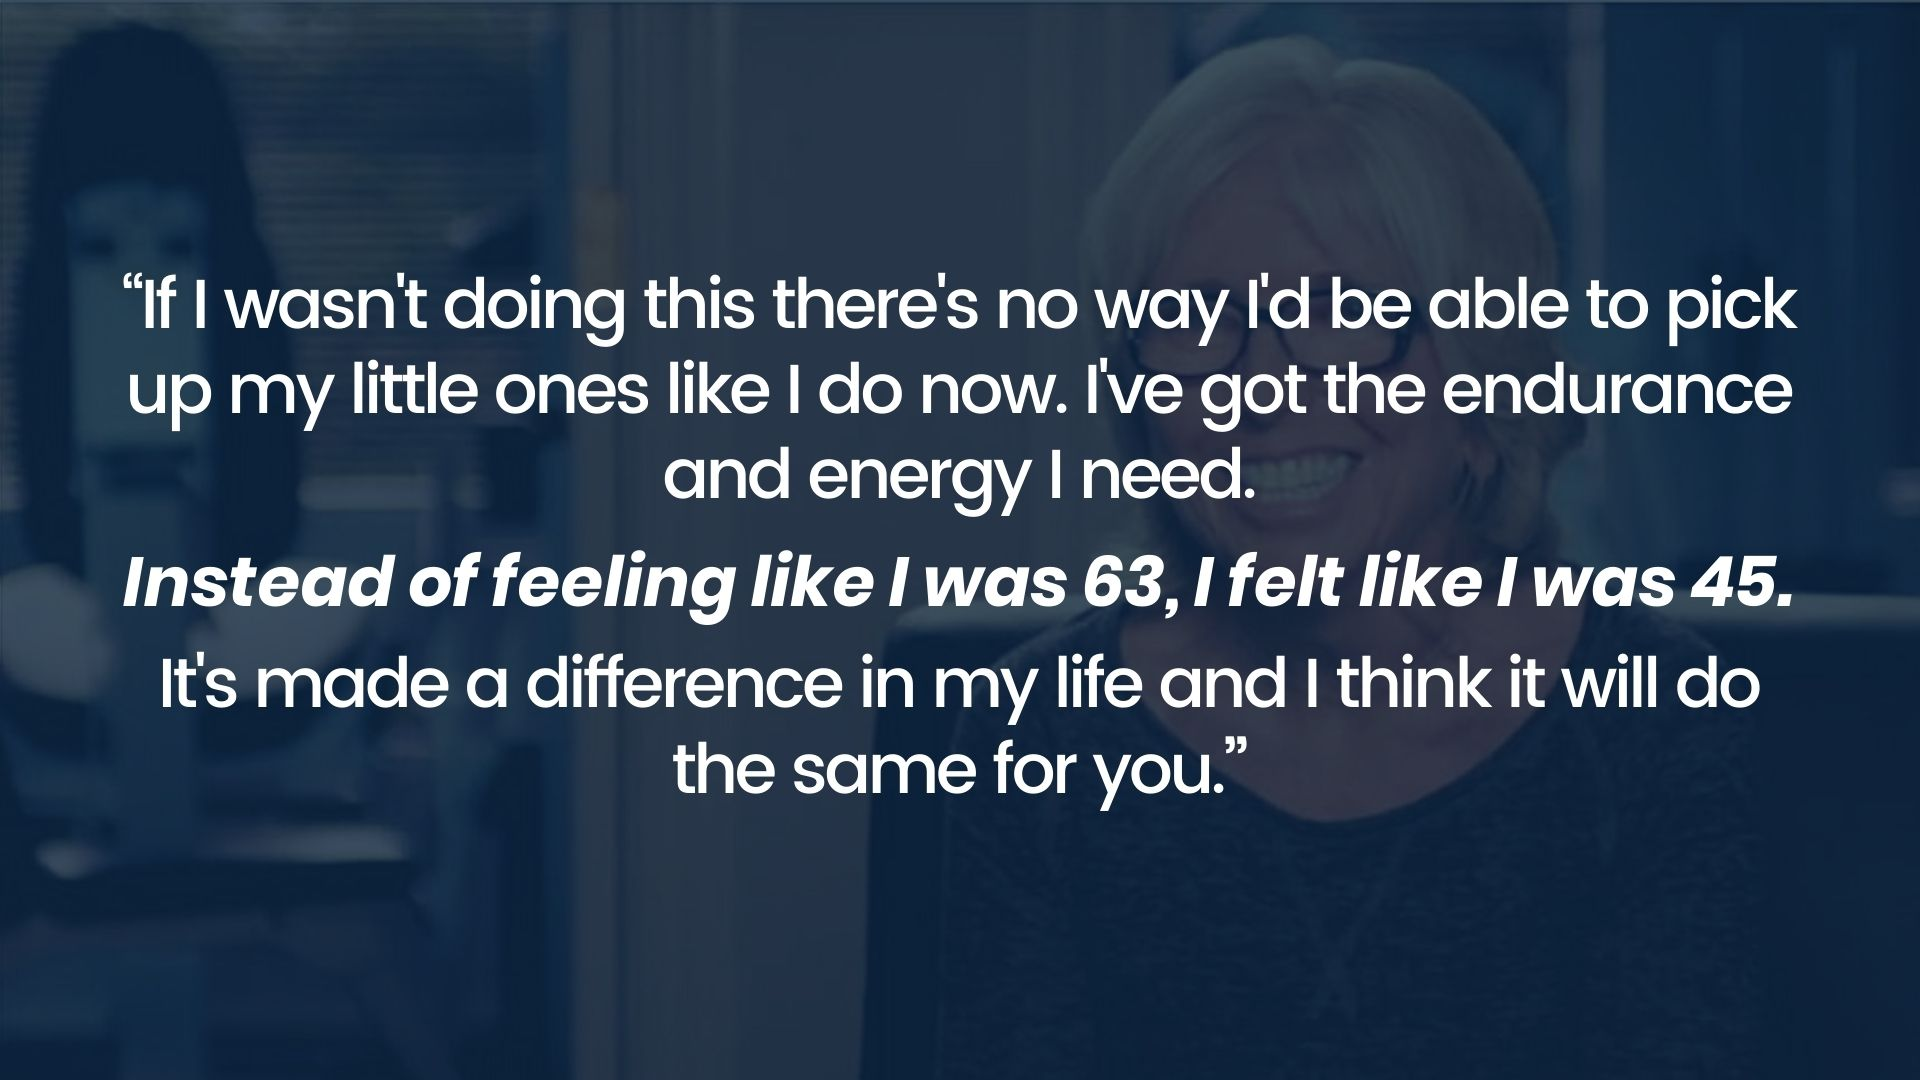 Personal training client says she has the endurance and energy she needs